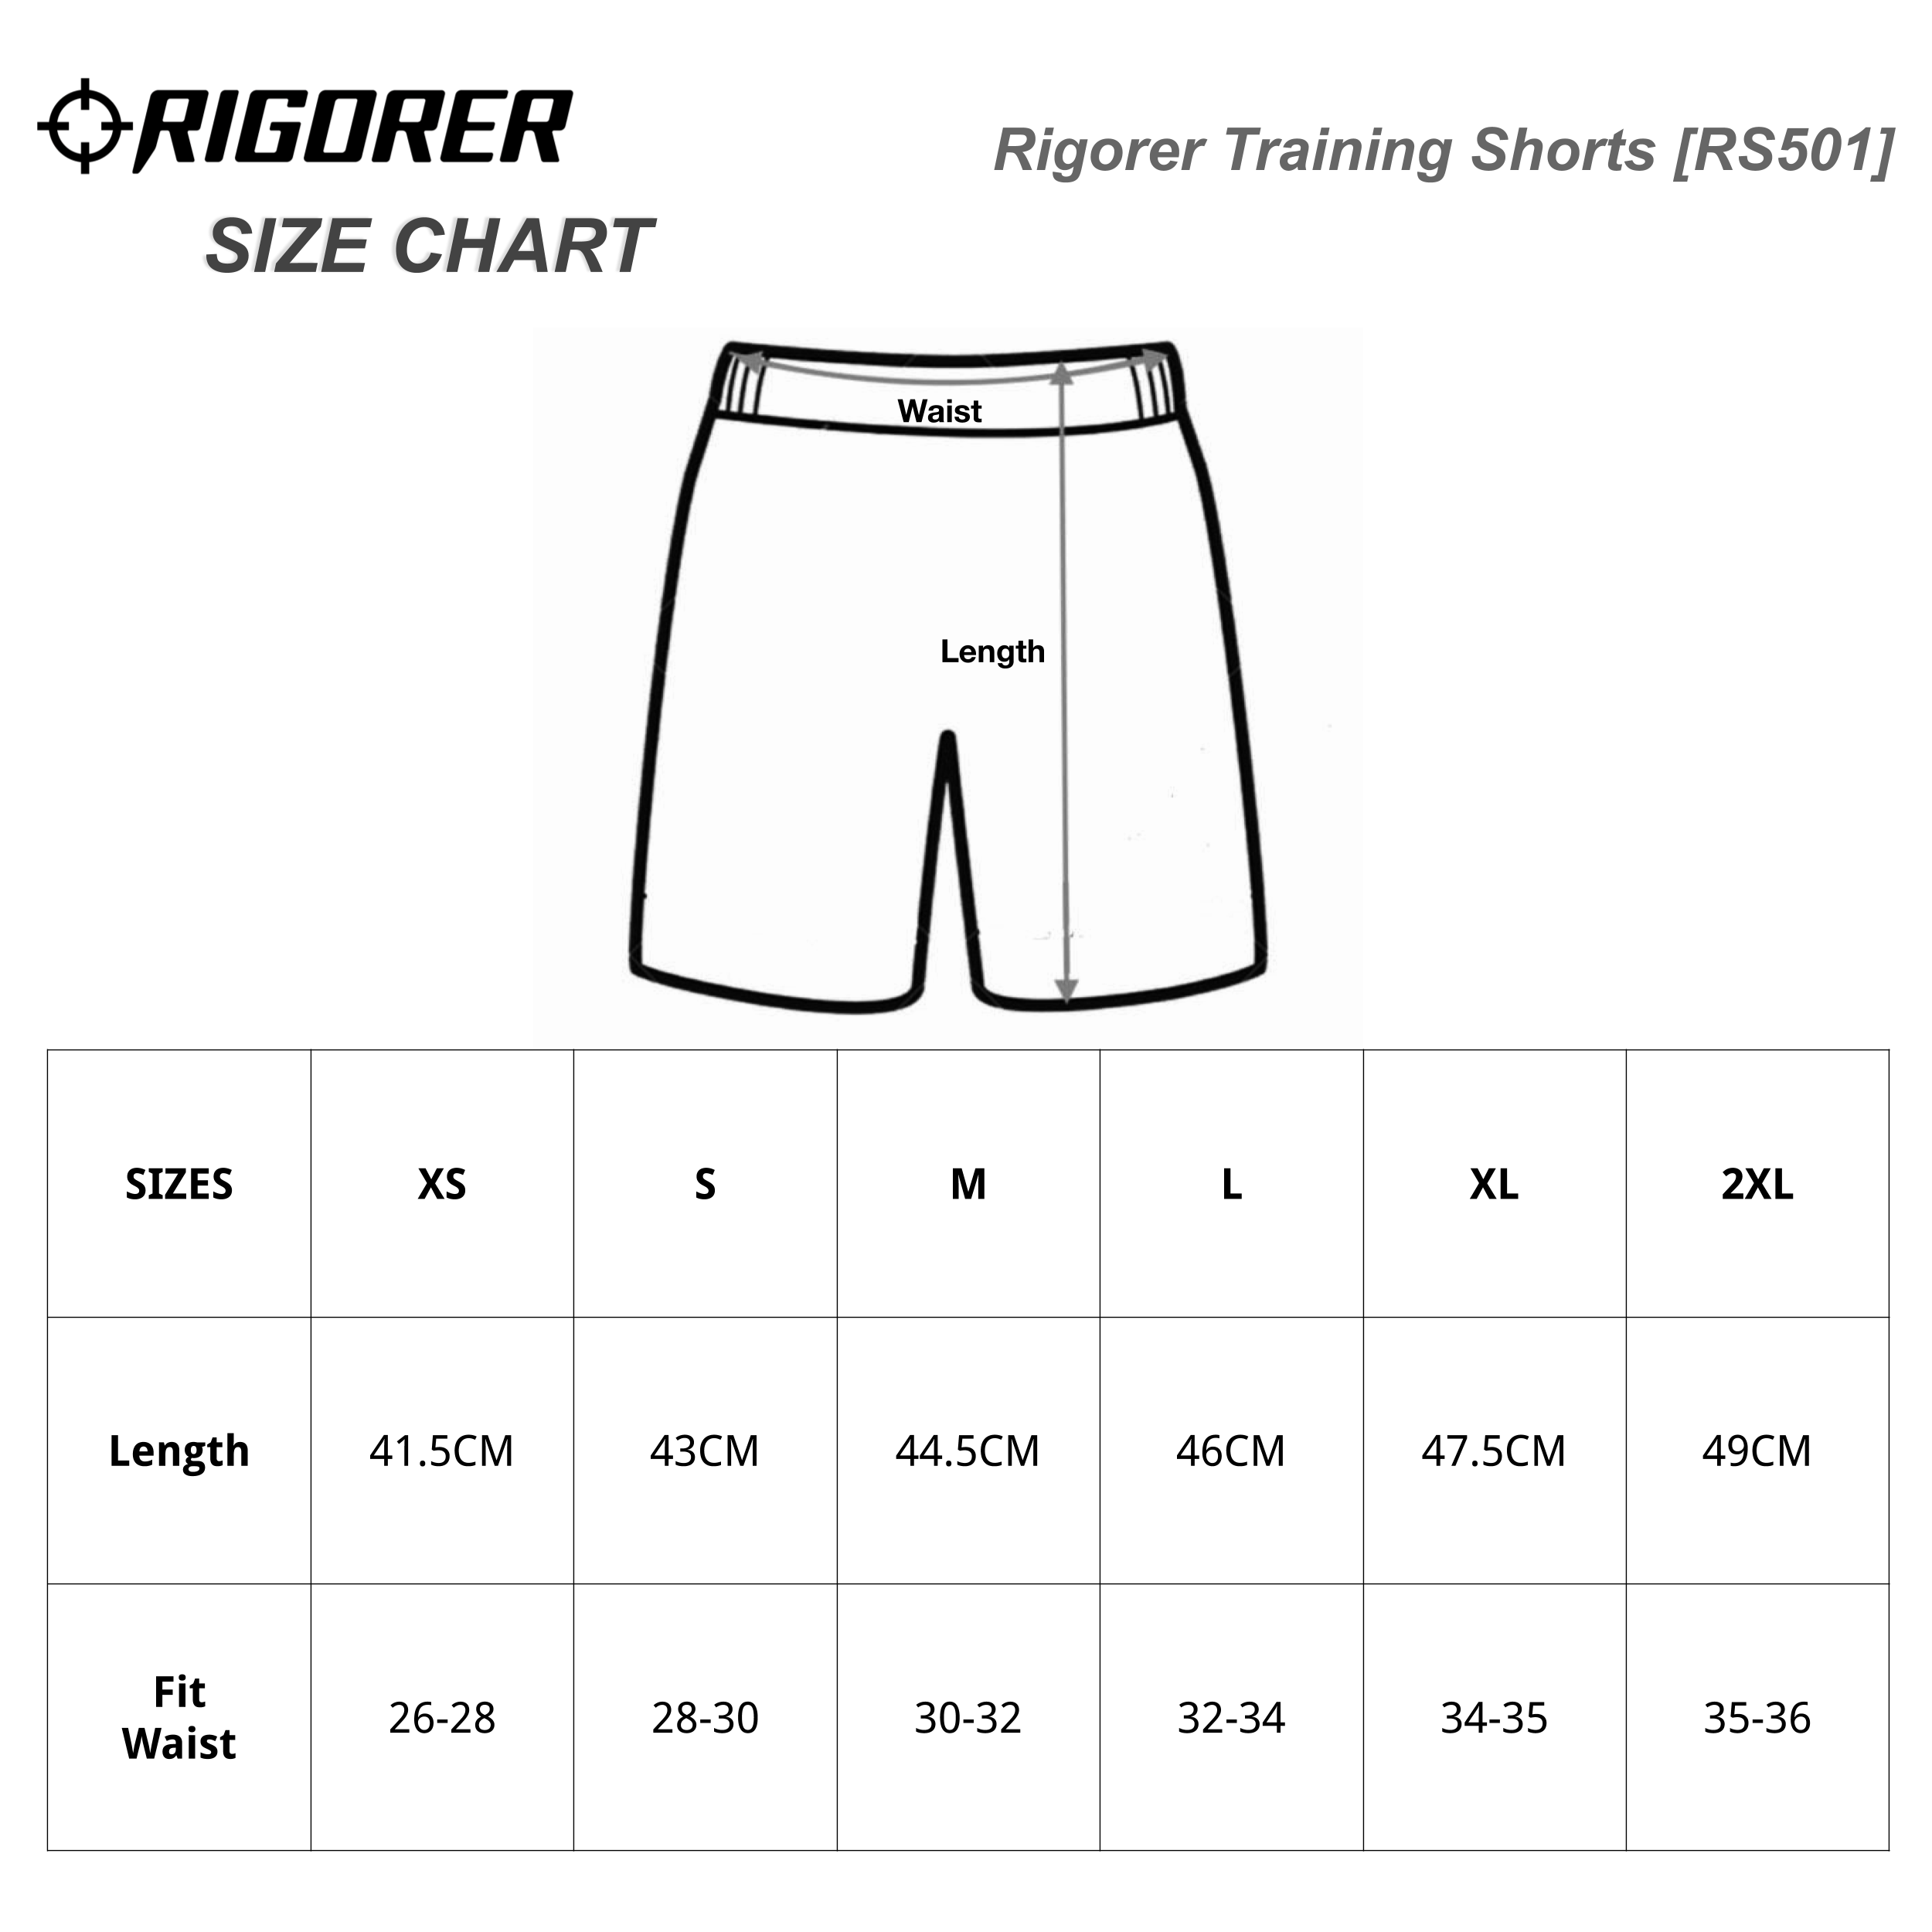 Rigorer Training Shorts [RS501] Sizing Chart